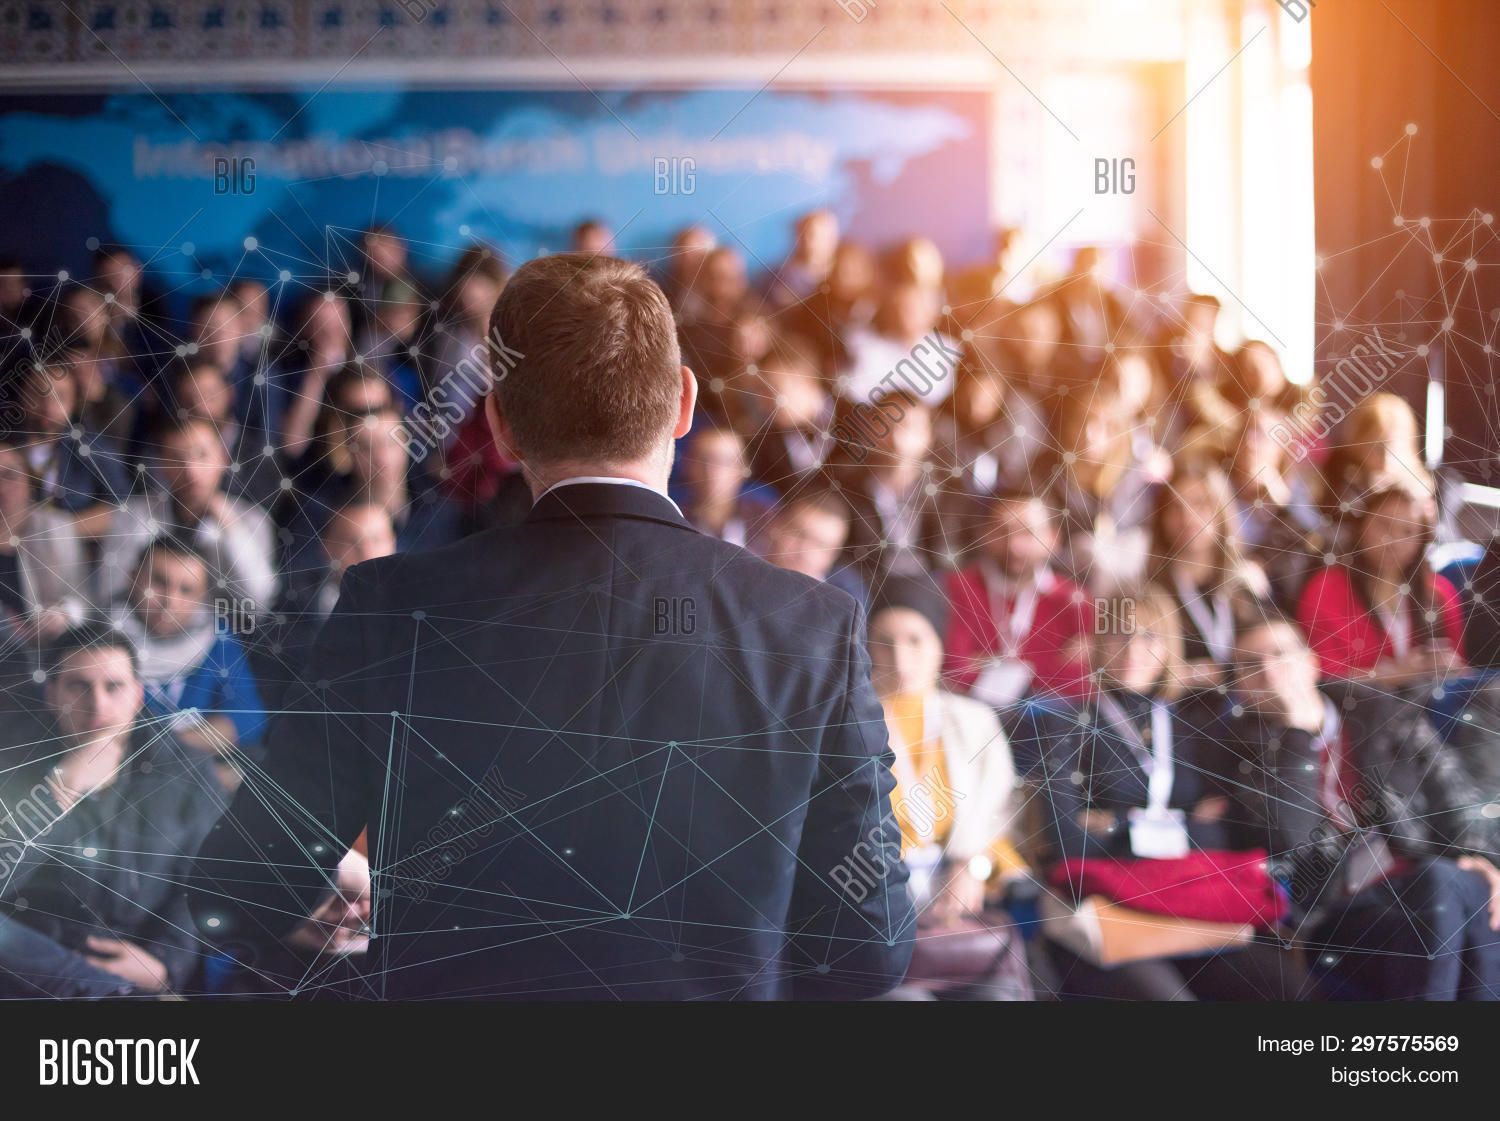 academic,audience,briefing,business,businessman,coaching,conference,congress,convention,corporate,dots,education,educator,entrepreneur,entrepreneurship,explaining,gesturing,giving,group,hall,indoors,information,institute,knowledge,learn,lecture,male,man,manager,meeting,participants,people,presentation,public,rear,screen,seminar,speaker,study,successful,teacher,teaching,teamwork,training,university,view,workshop